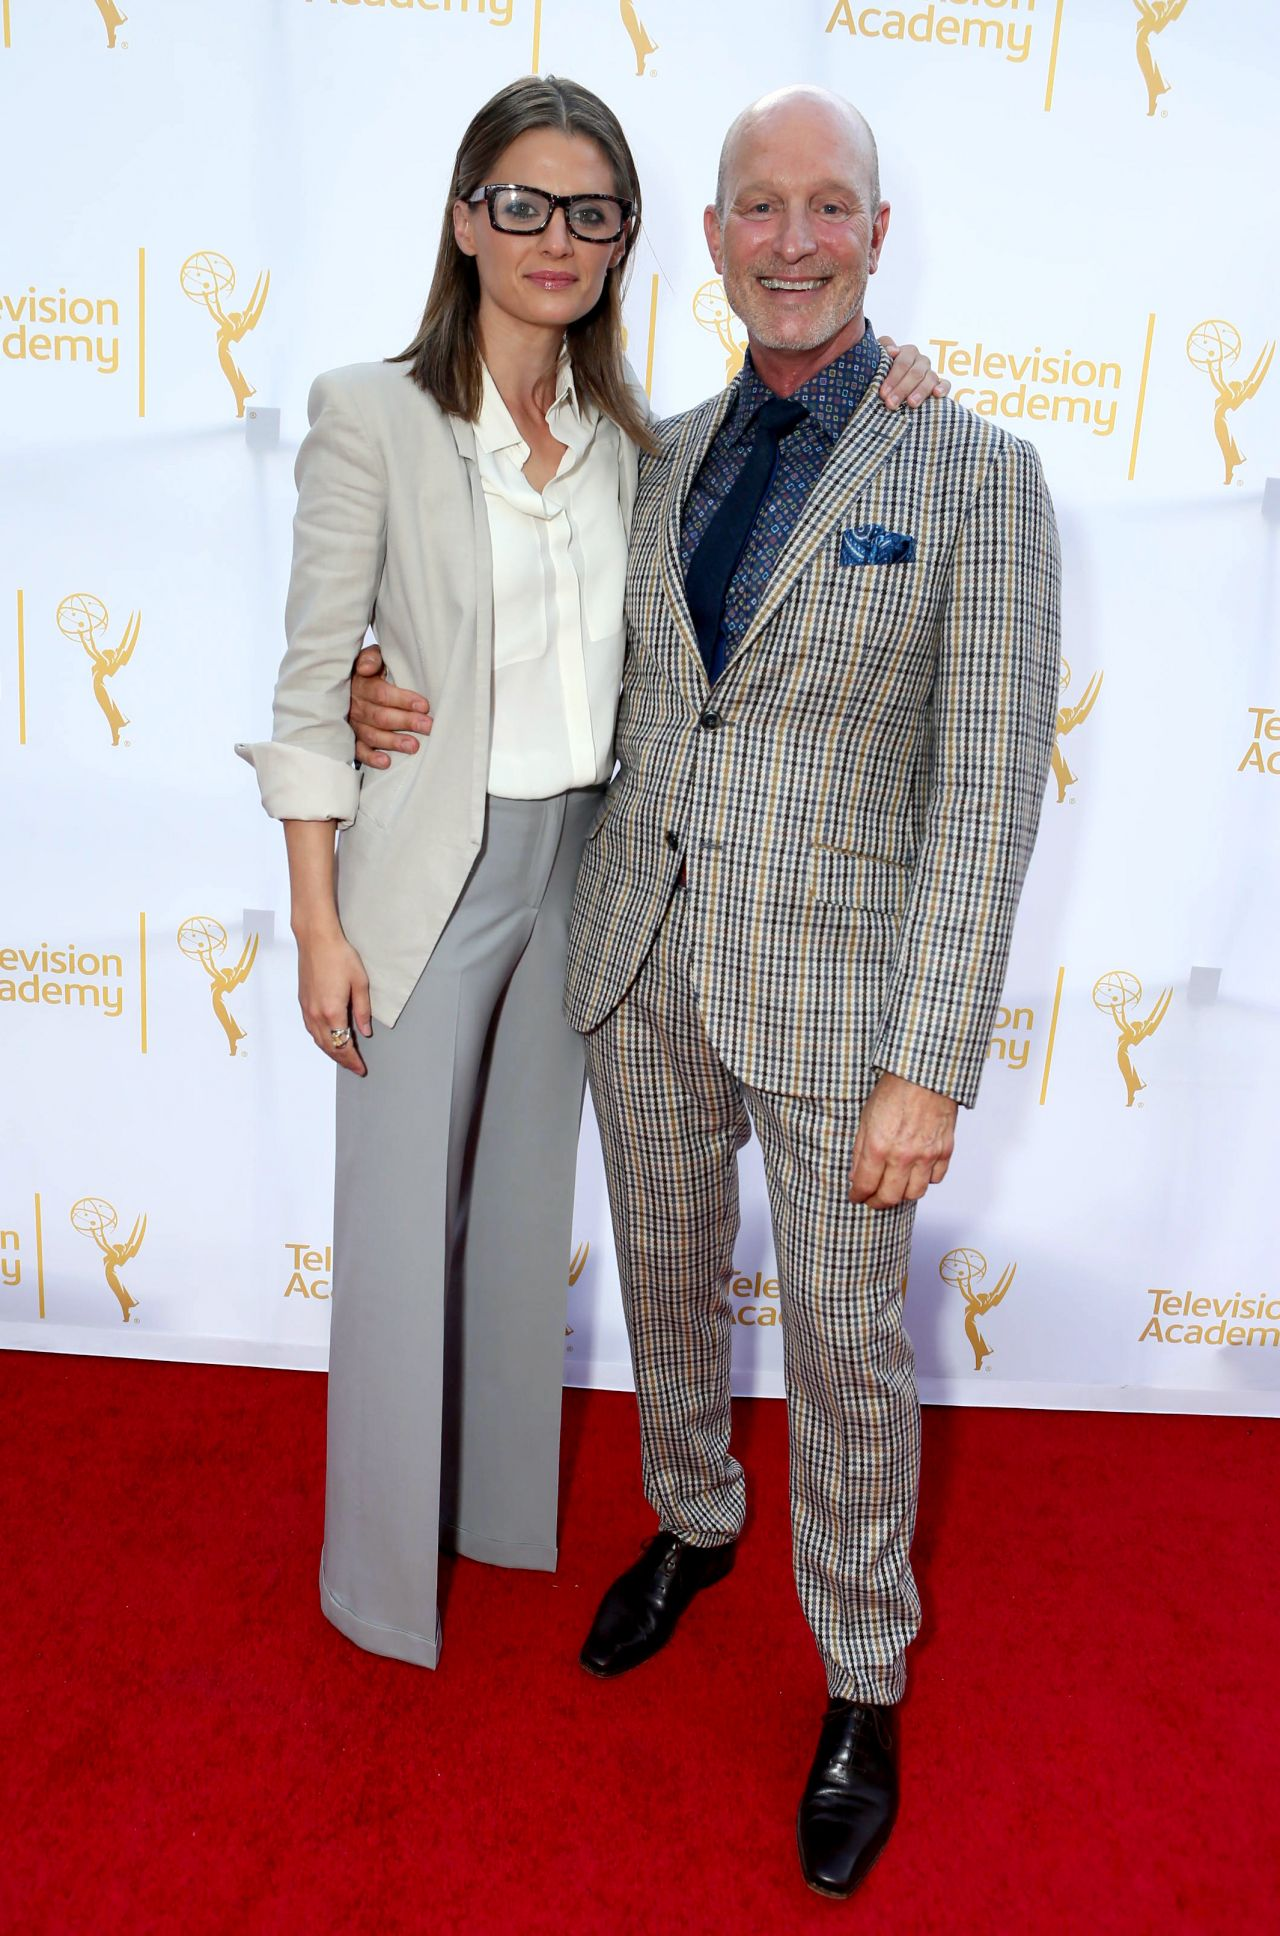 Stana Katic – Emmy Awards 2014 Costume Design and Supervision Nominee Reception in Los Angeles